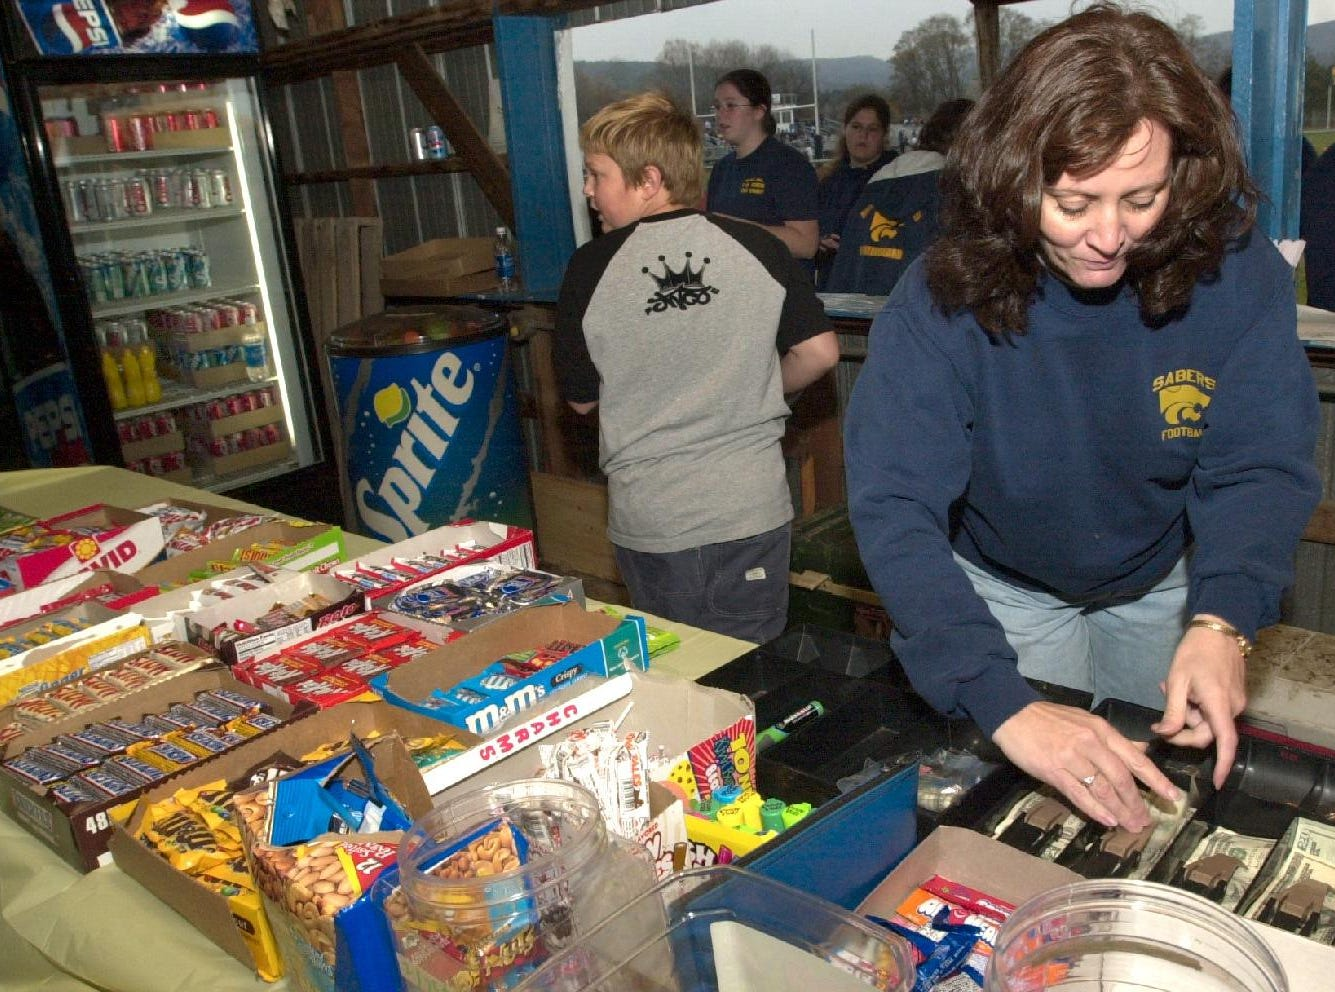 From 2003: Susquehanna Valley Booster Club Secretary Lorraine Perez makes change at the concession stand during a football game at the high school.